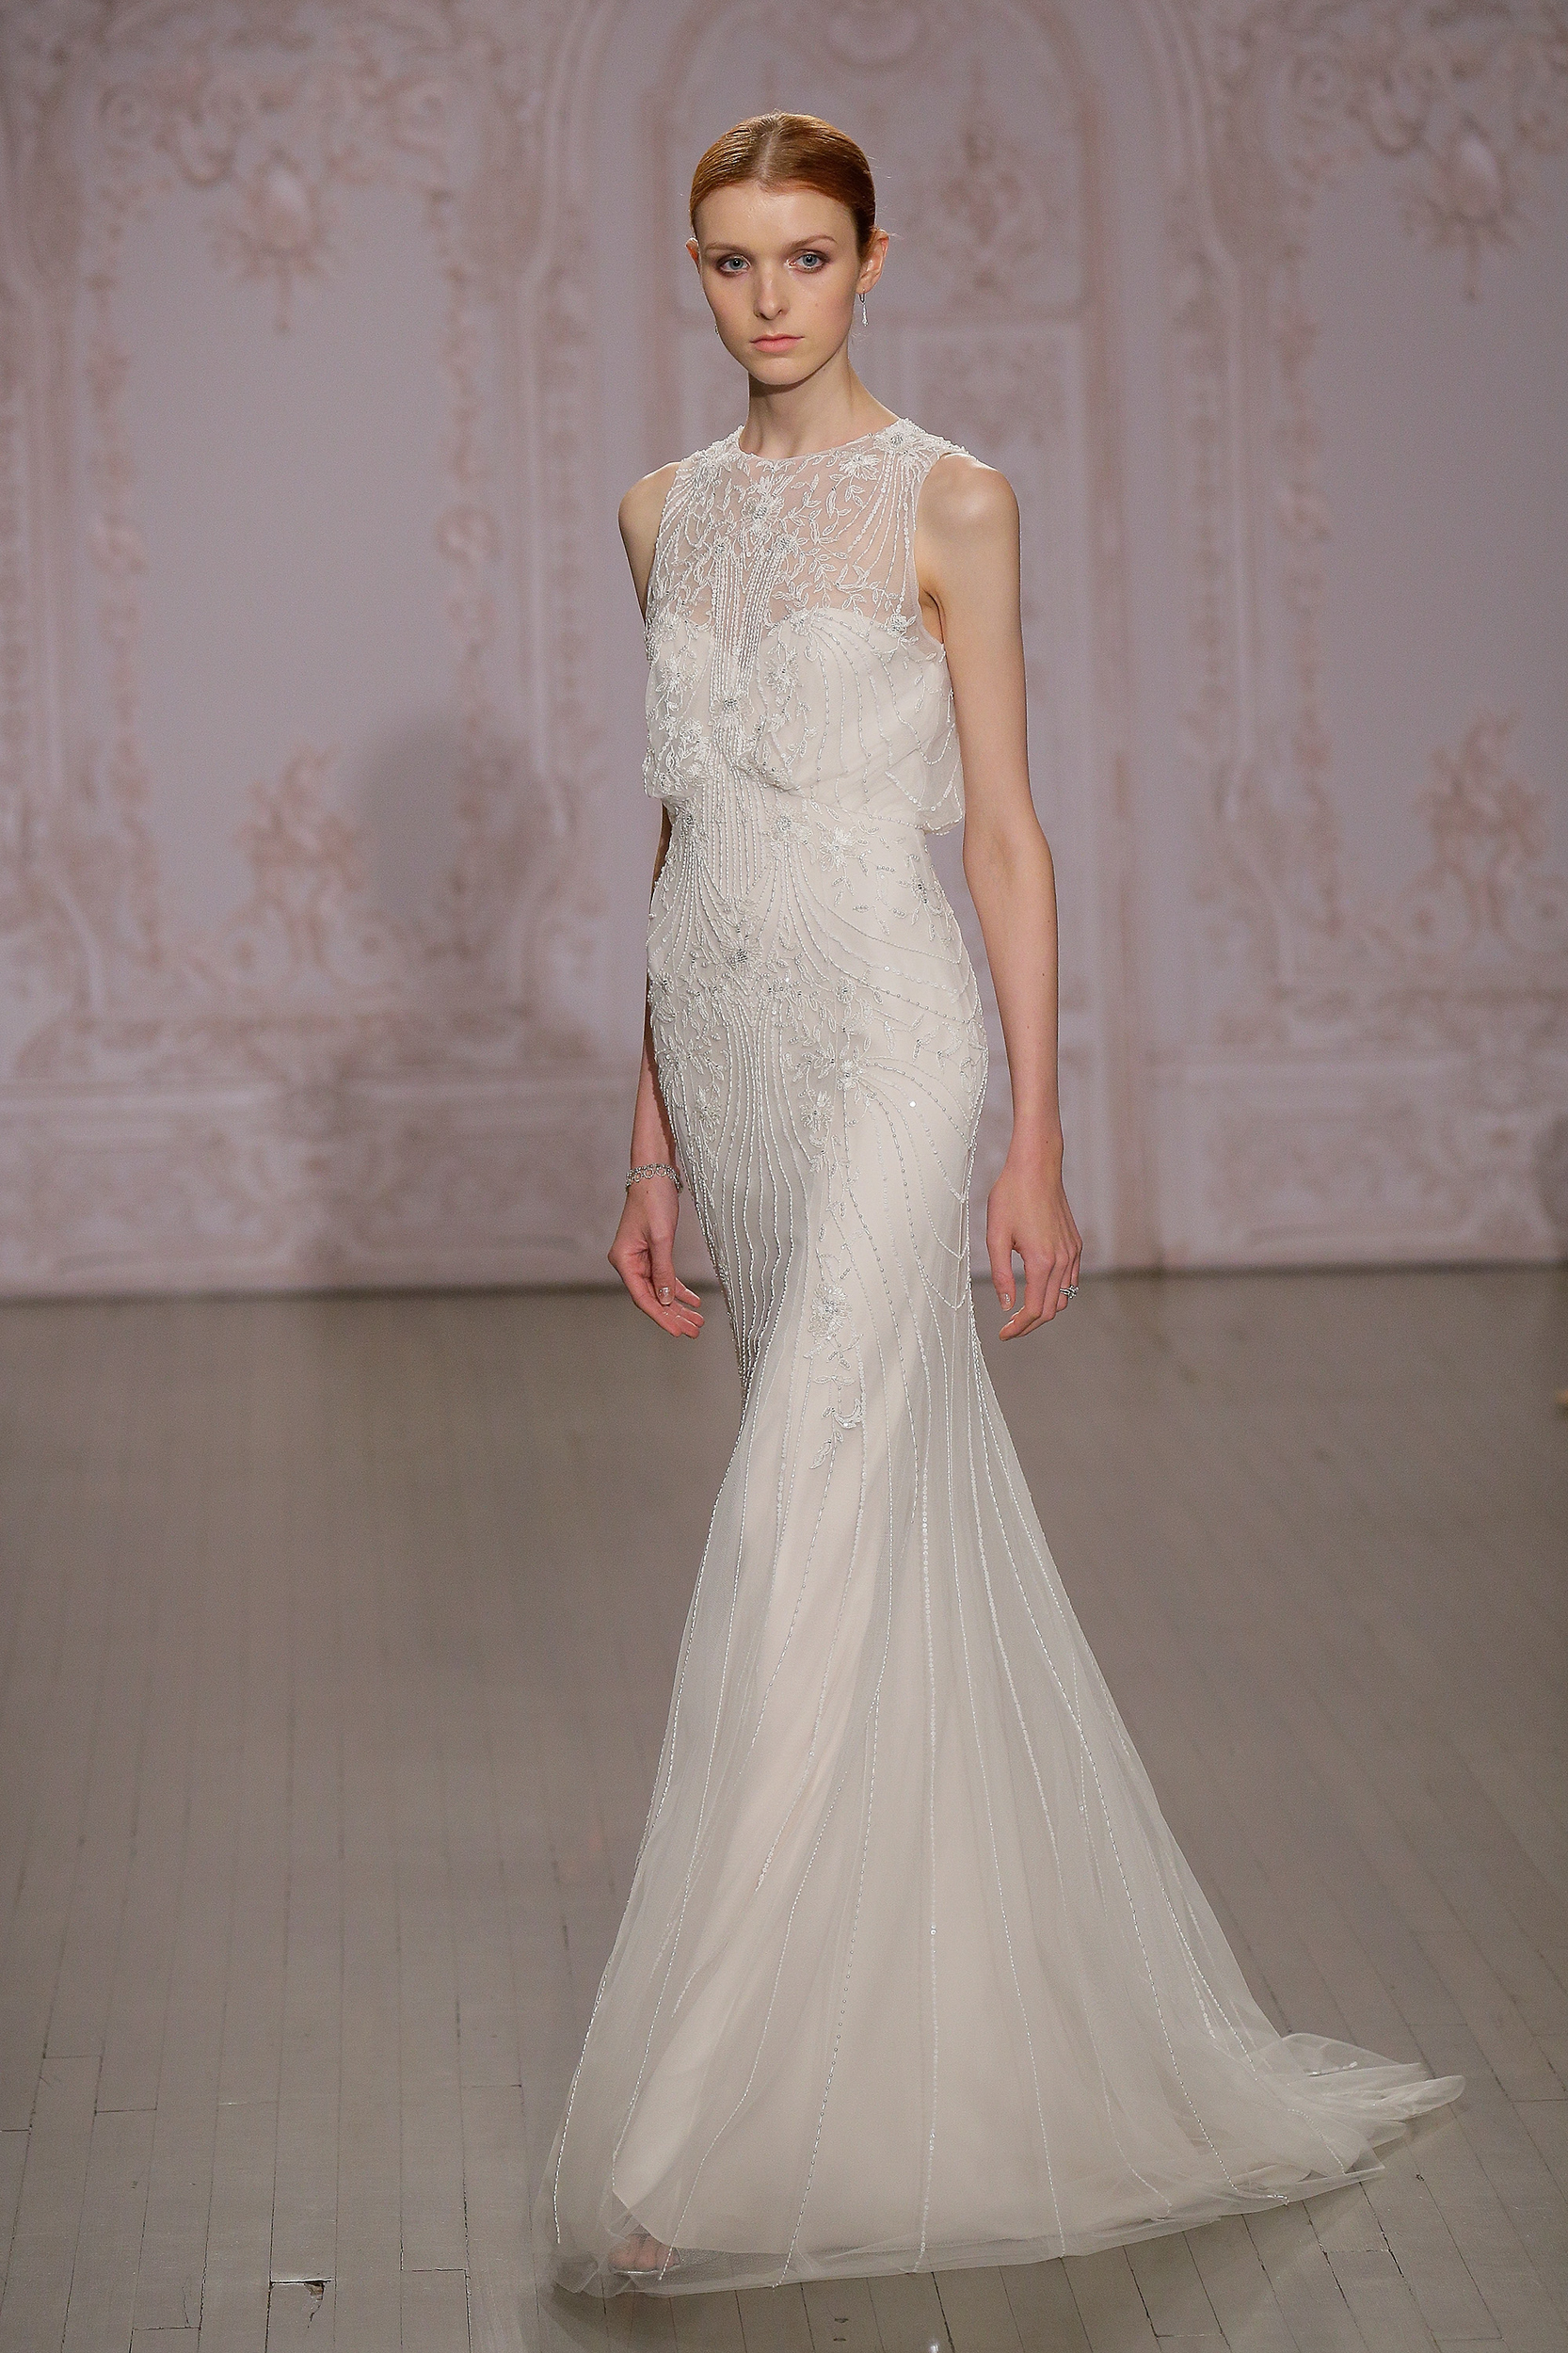 Bridal Fashion Week Fall 2015 Bridal Fashion Show 2015